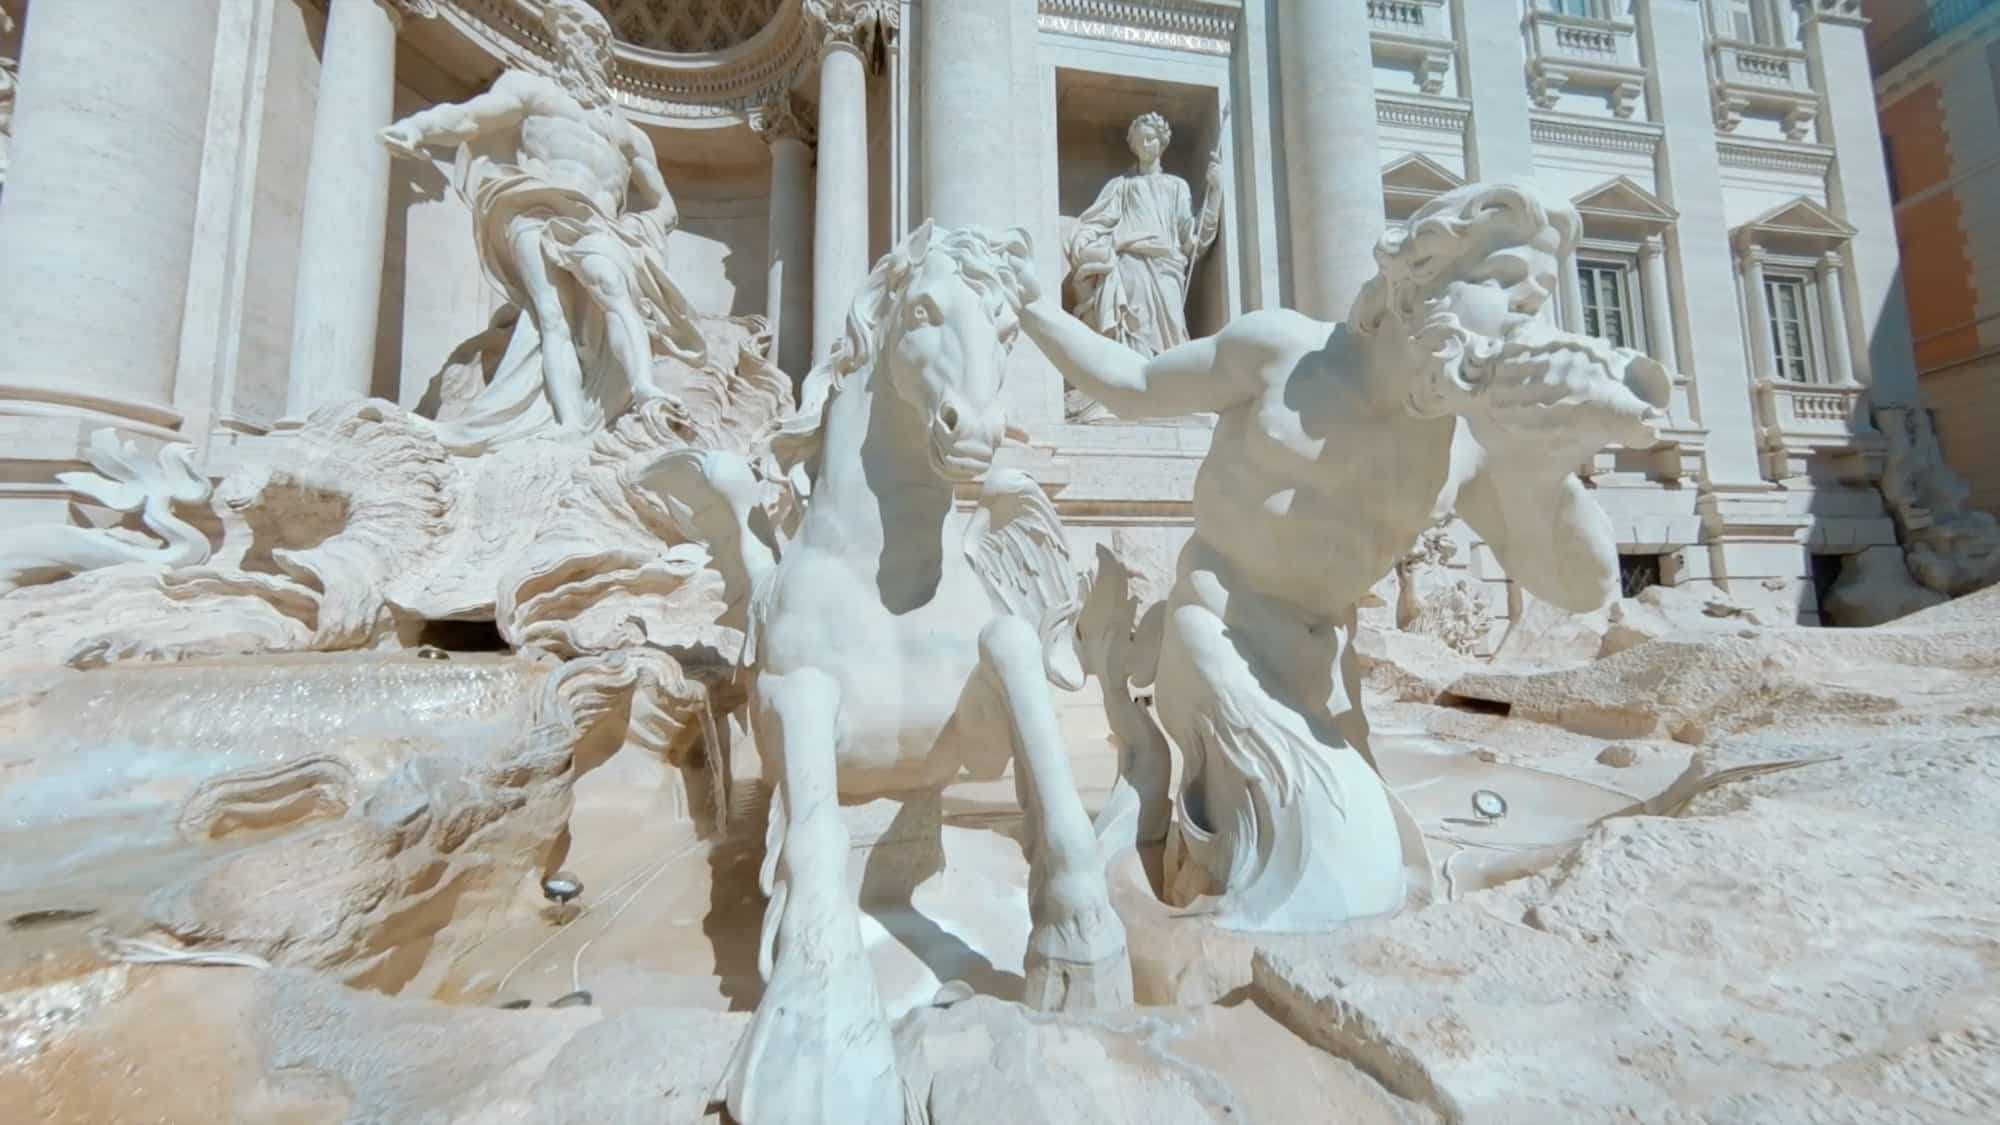 Stunning drone video shows Trevi Fountain like you have never seen it before